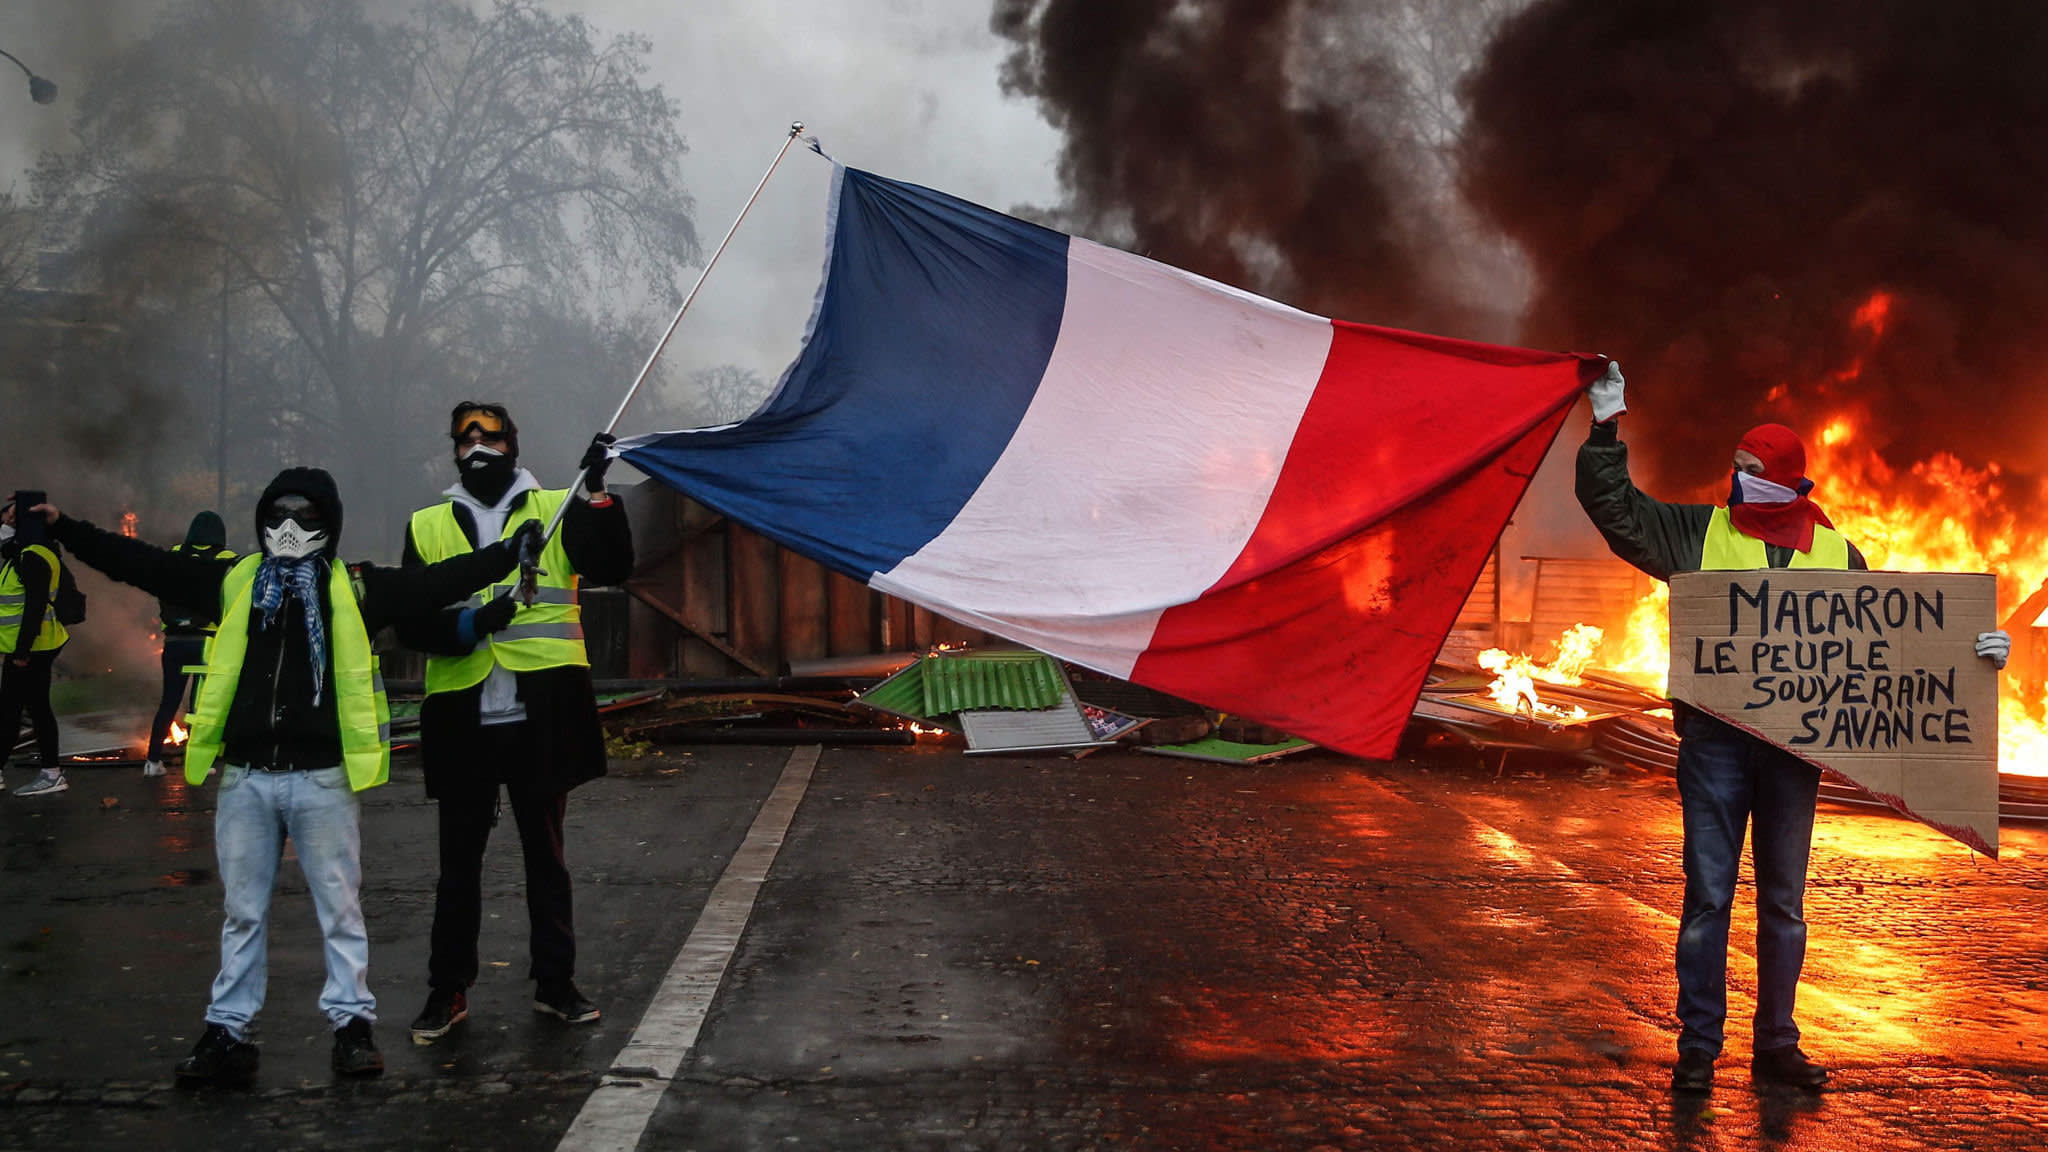 French government to suspend fuel tax rise after riots